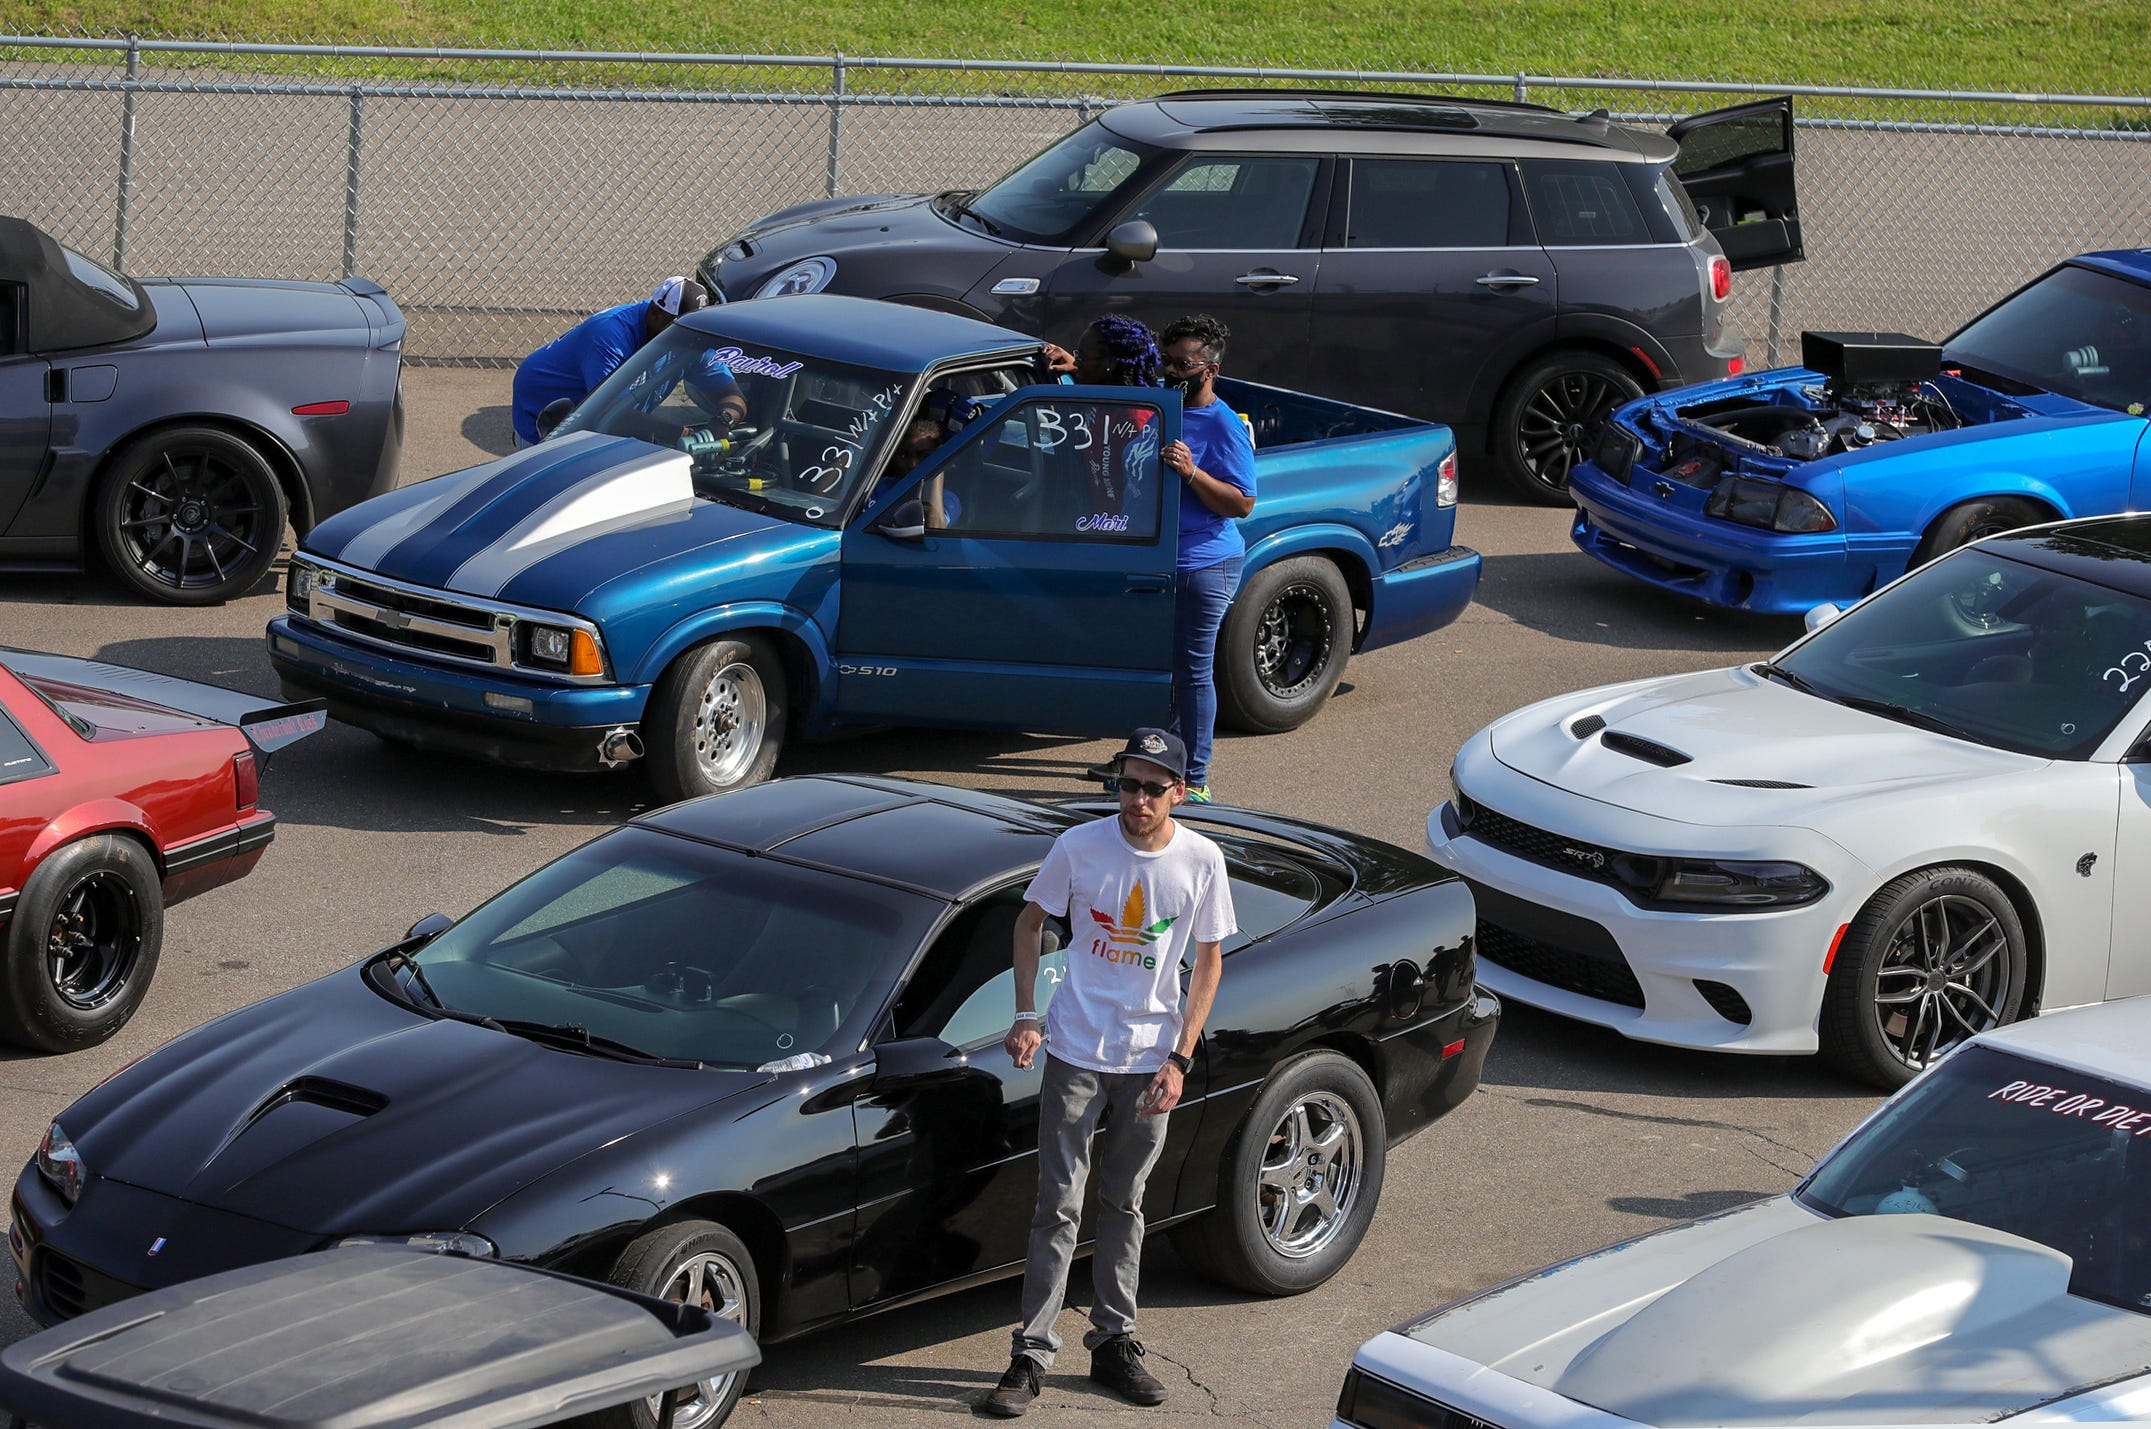 Joemari Fox, 21, waits in the staging area with his family before racing in an event sponsored by Payso Productions at Lapeer International Dragway on Saturday, July 17, 2021.